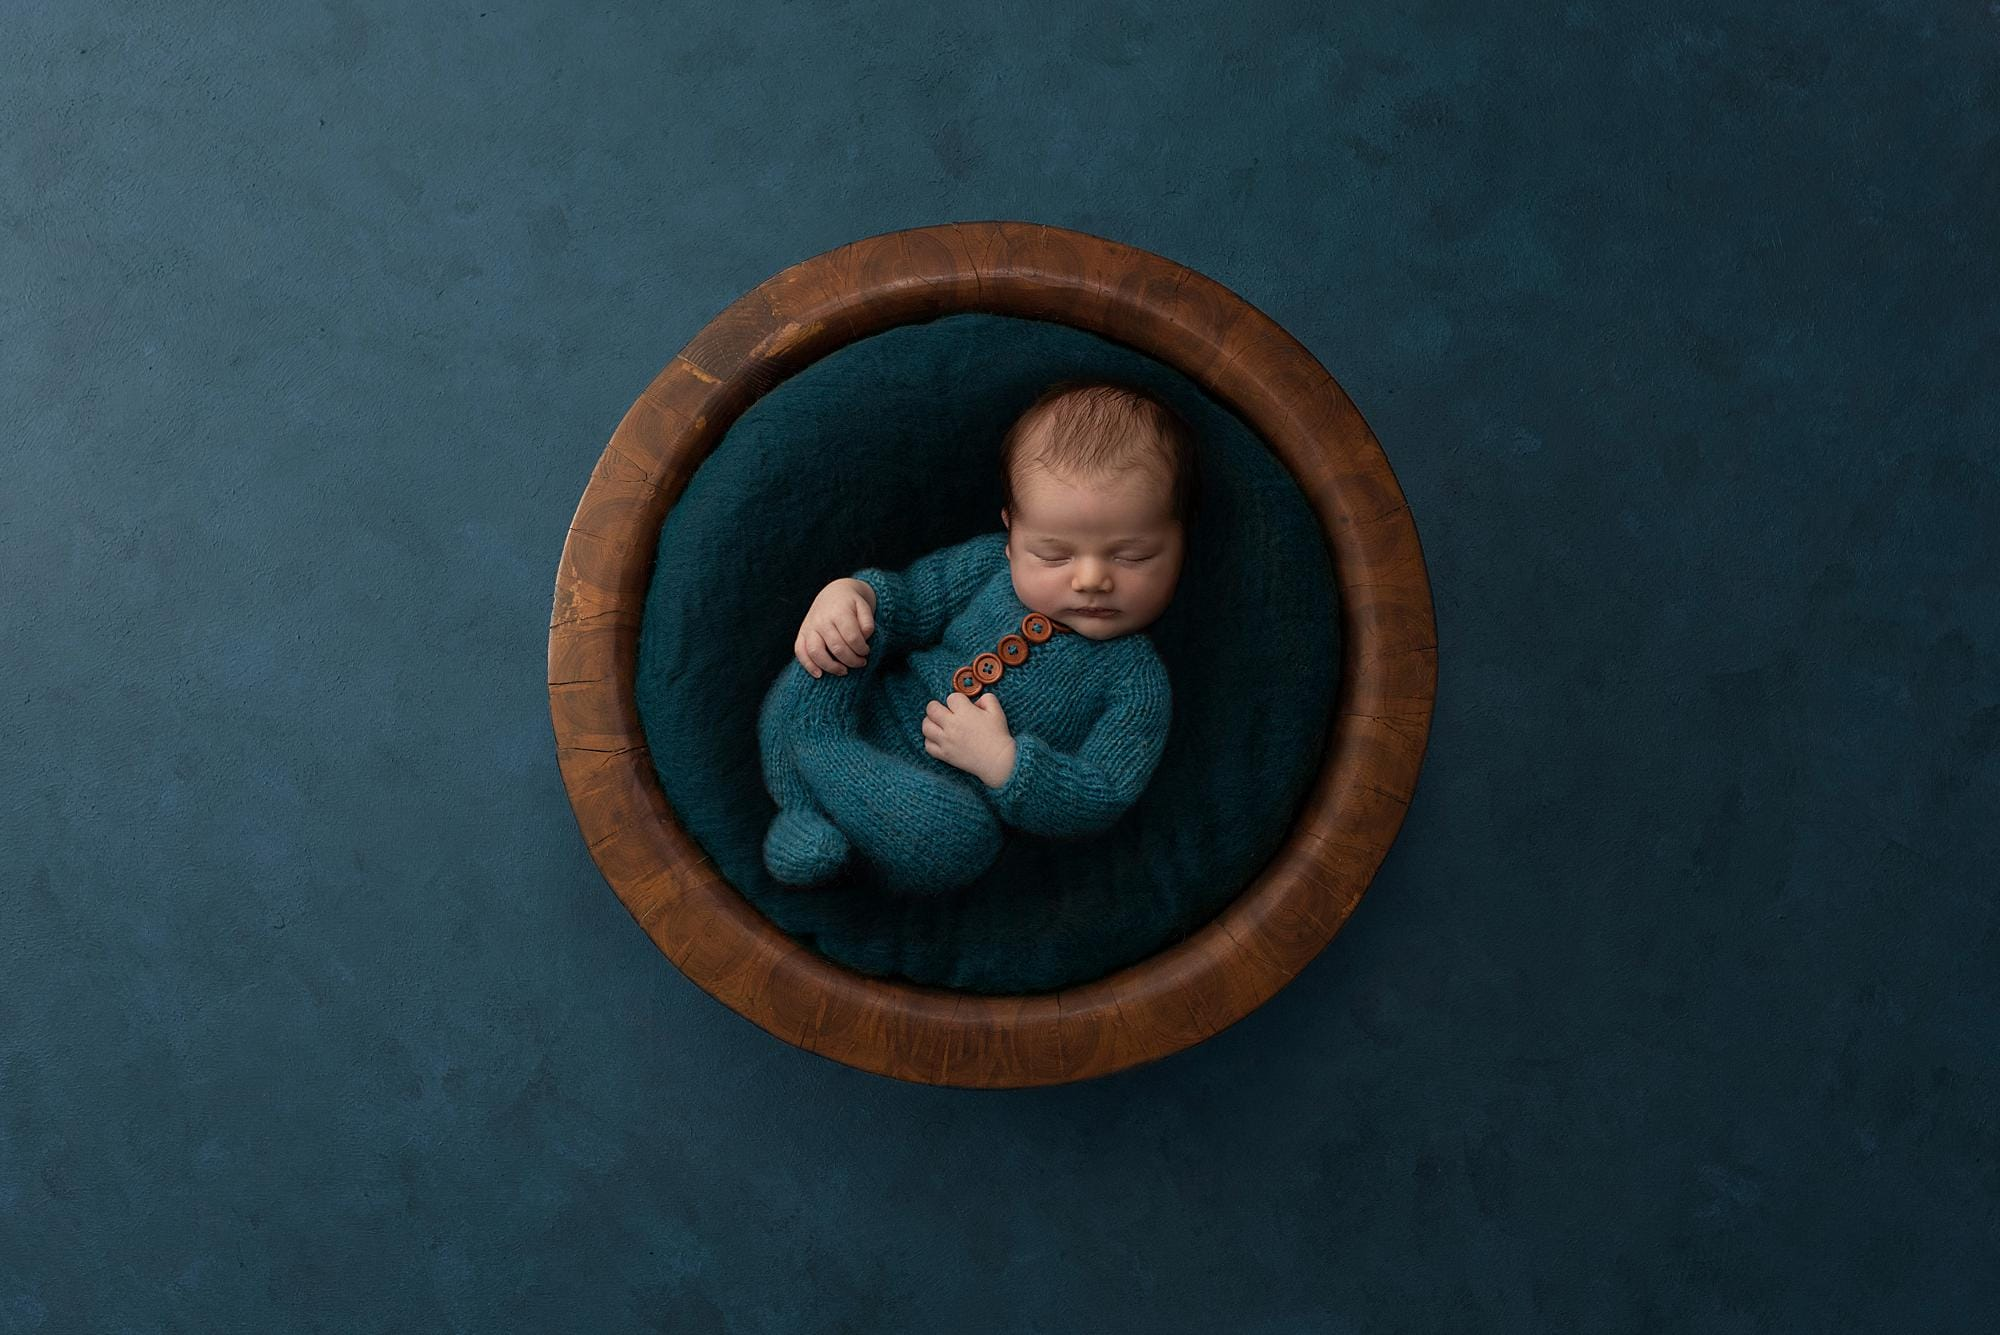 Newborn boy in a teal romper lies in a wooden bowl during his Baby photo shoot in Suffolk